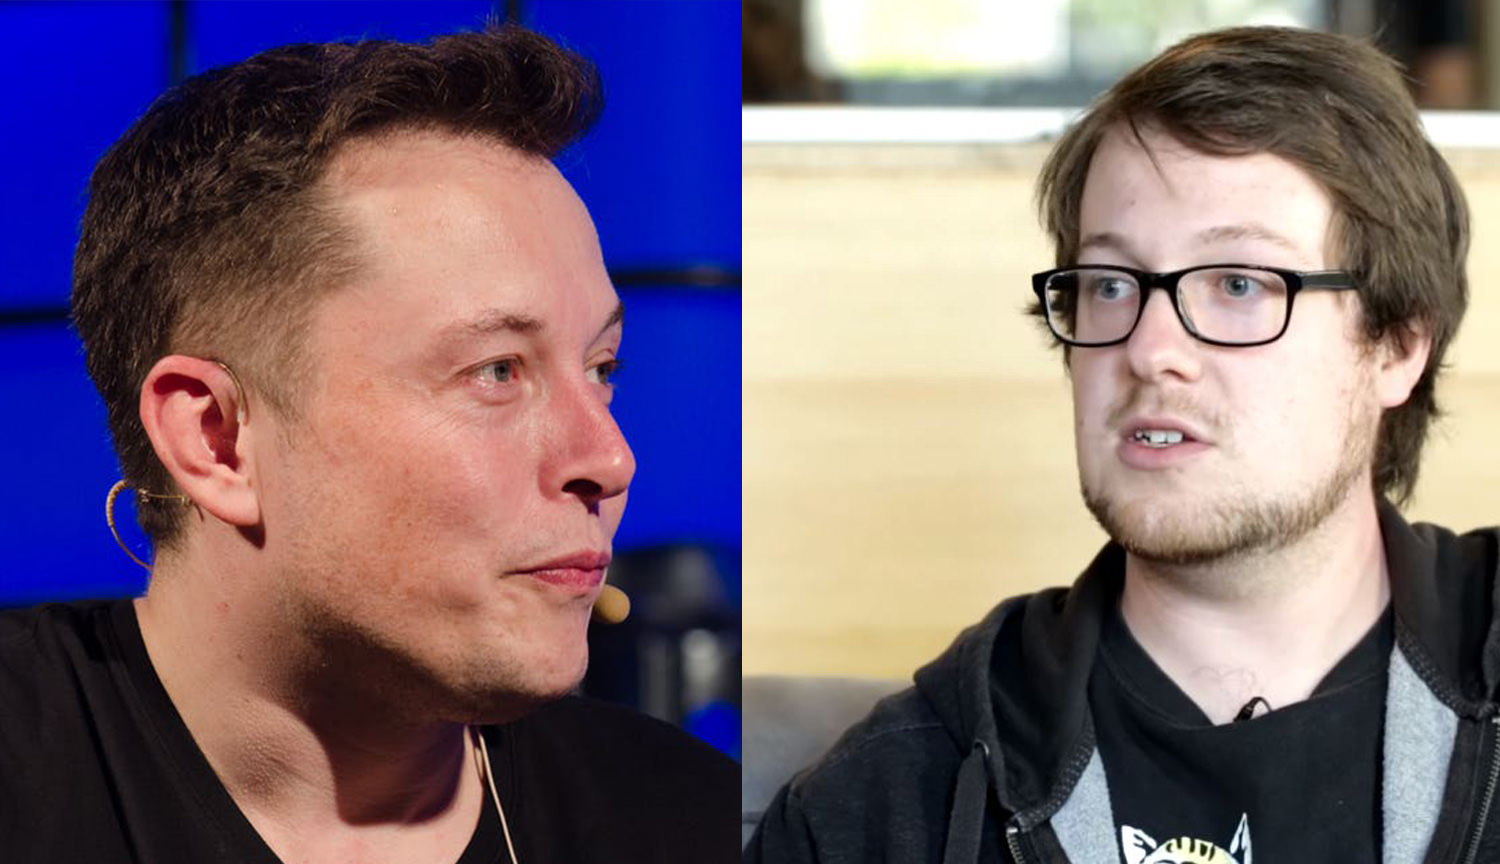 How Elon Musk and the Creator of cryptocurrency Dogecoin fighting scams